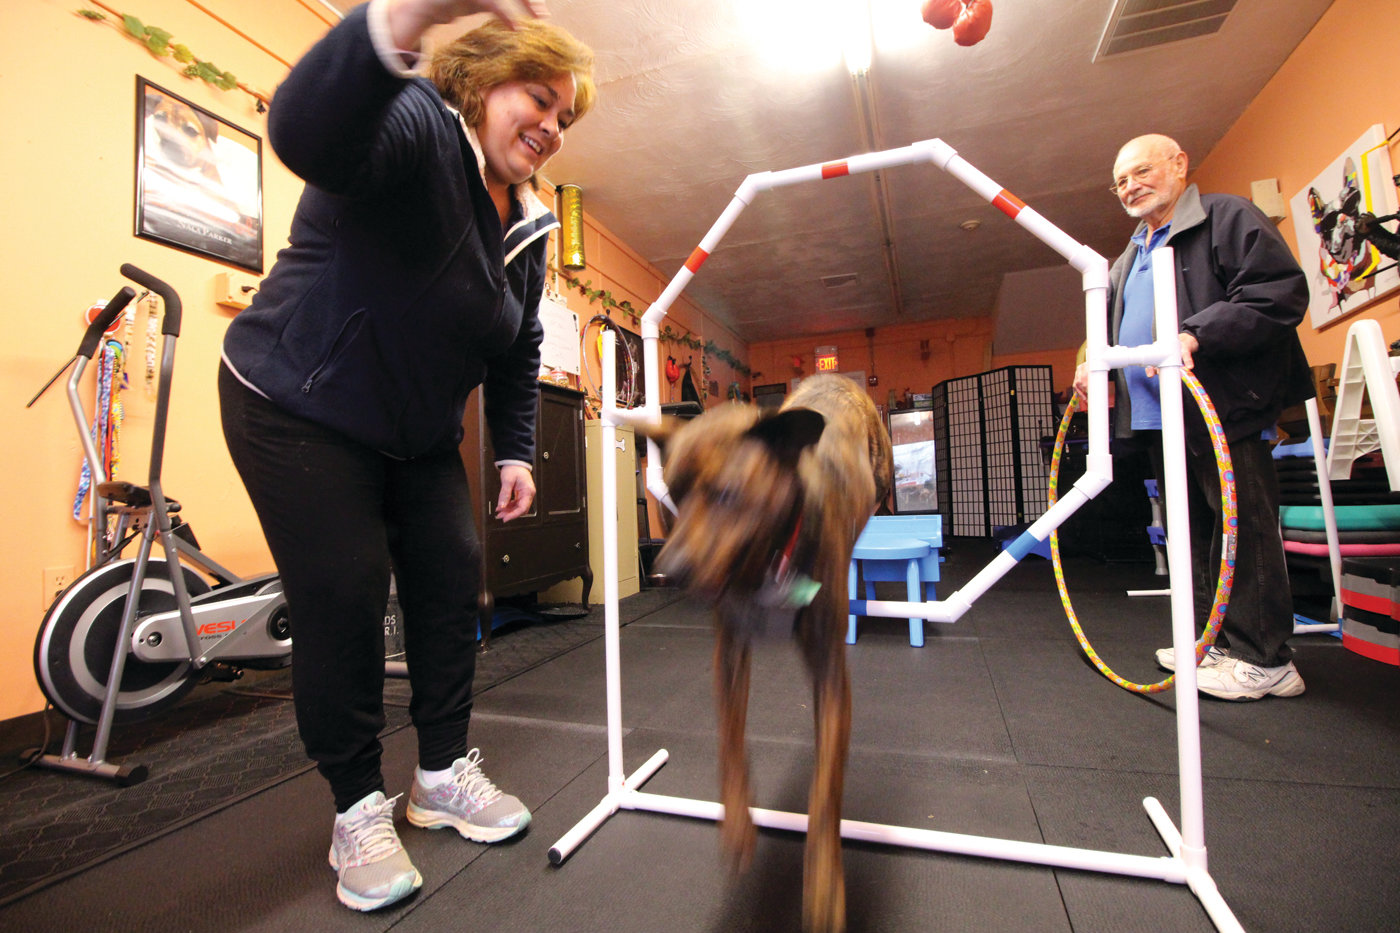 GOING THROUGH HOOPS: Deb Quattrini gets Hunter to leap through a hoop at the Ruff Wrangler Canine Workout Center in Conimicut.